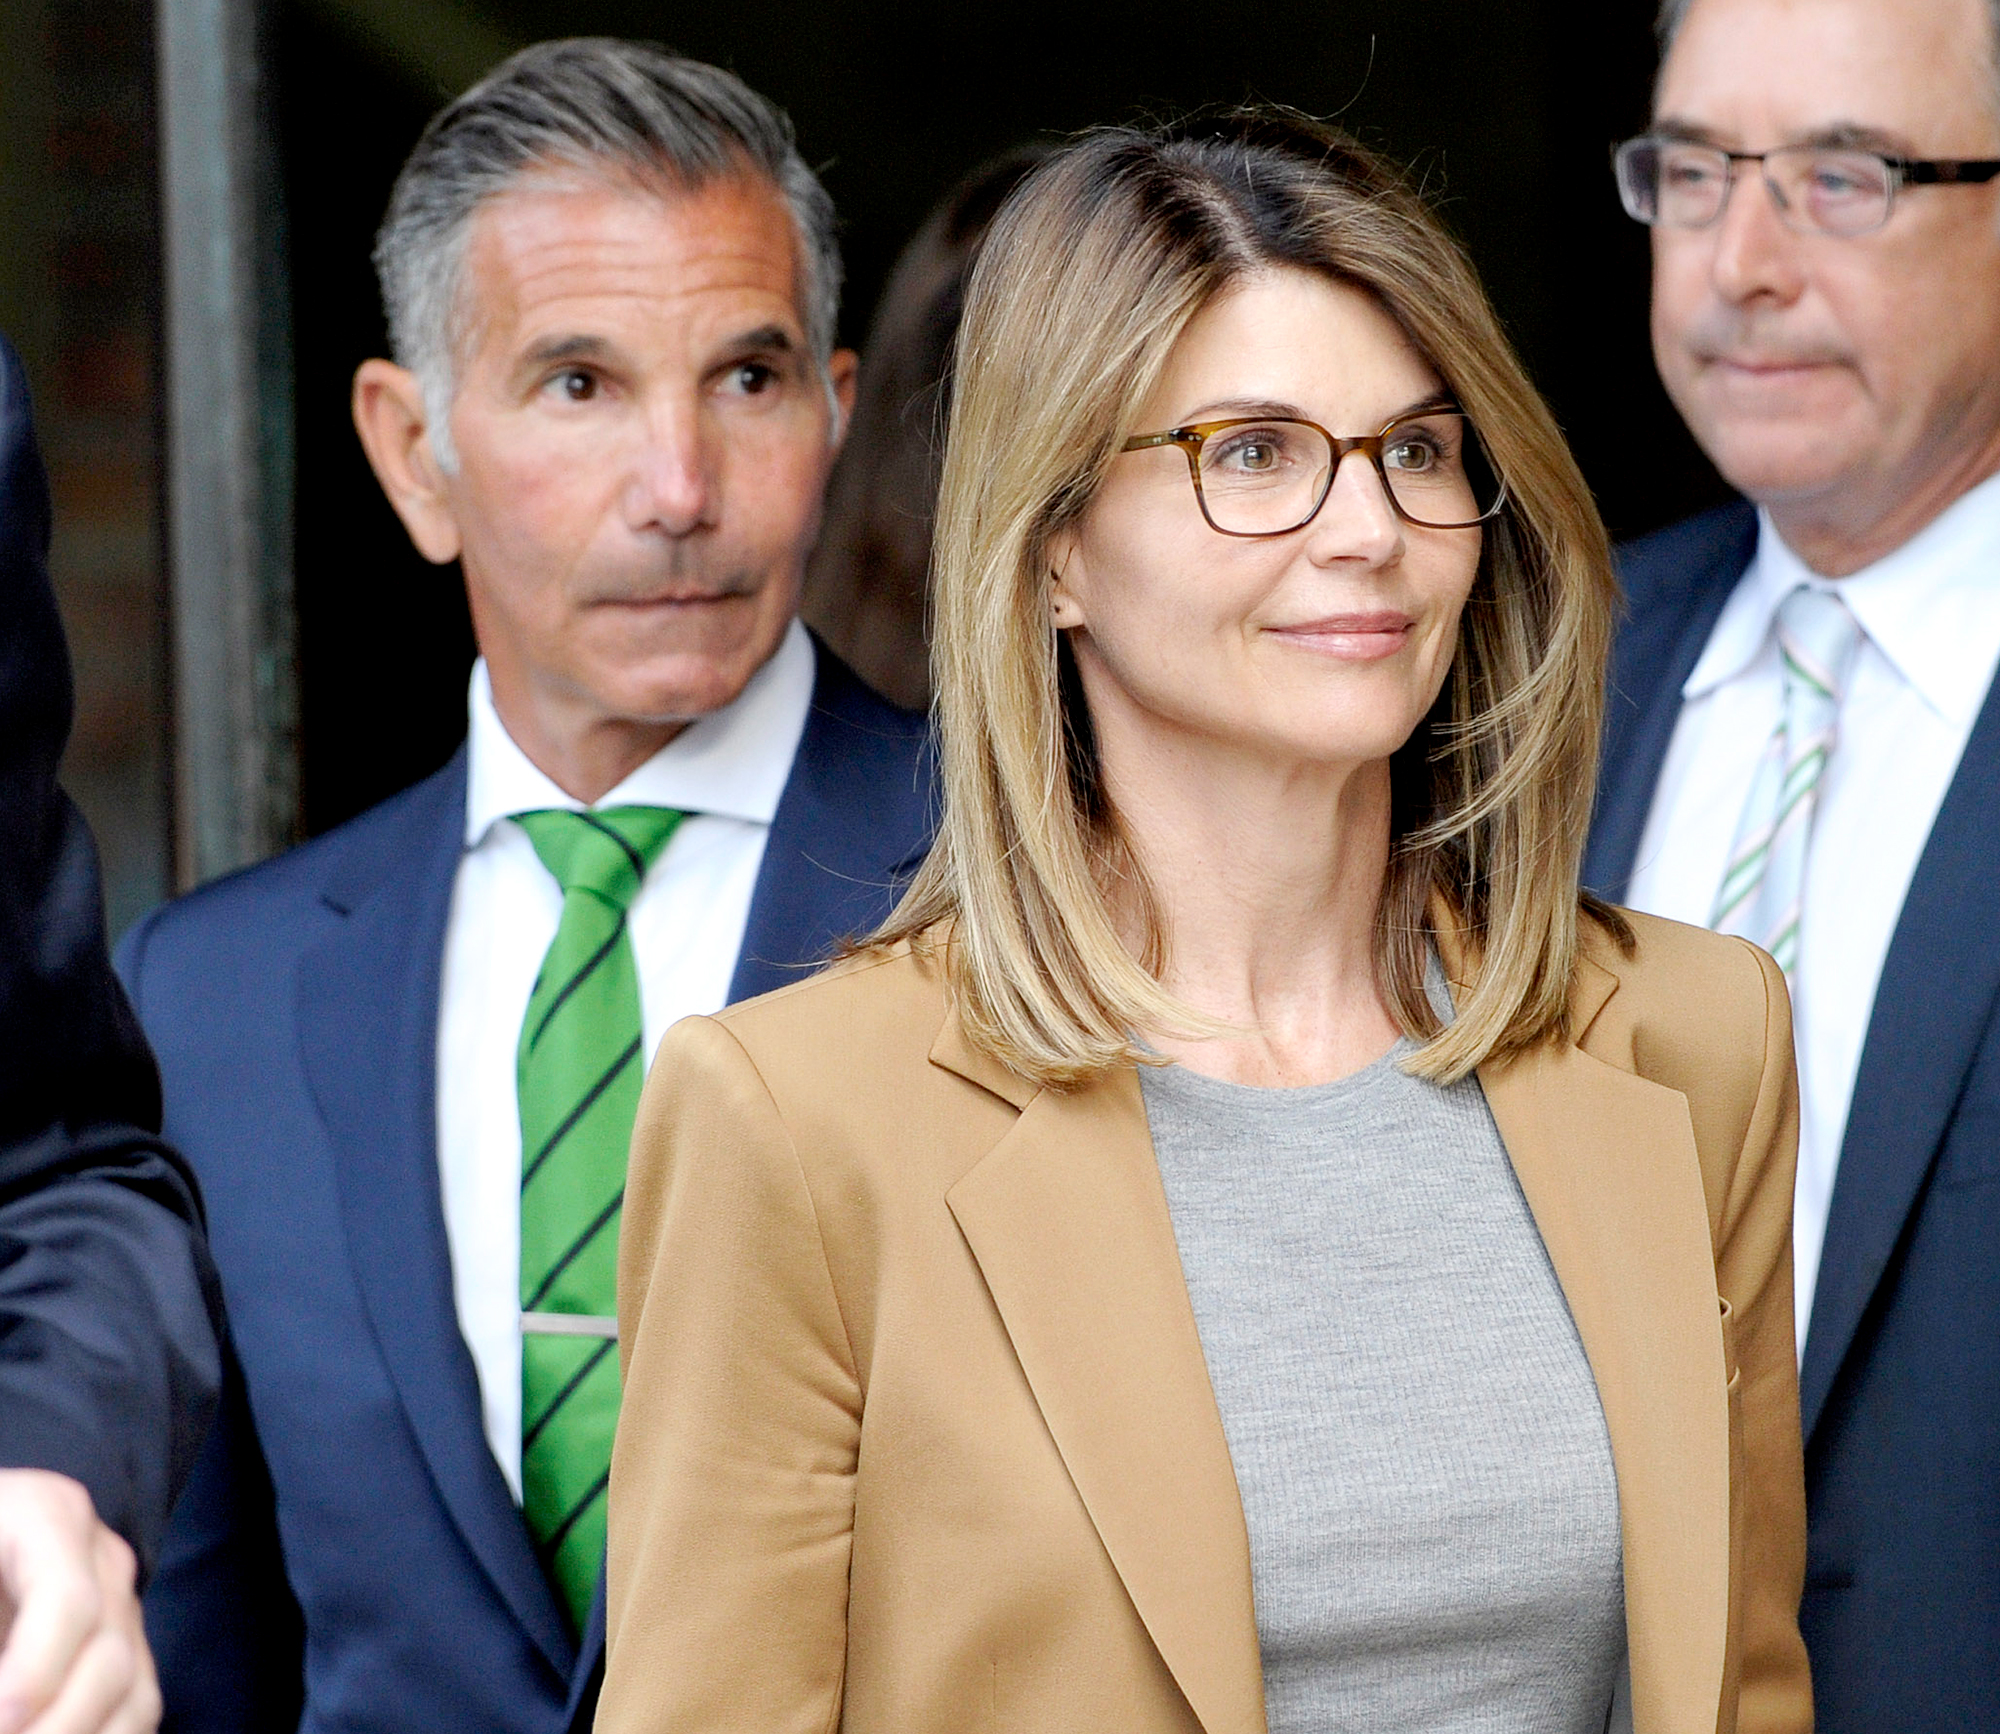 Lori Loughlin and Mossimo Giannulli 'Made a Calculated Decision' to Get Daughters Into USC With Assistance: 'It Would Have Cost Millions'